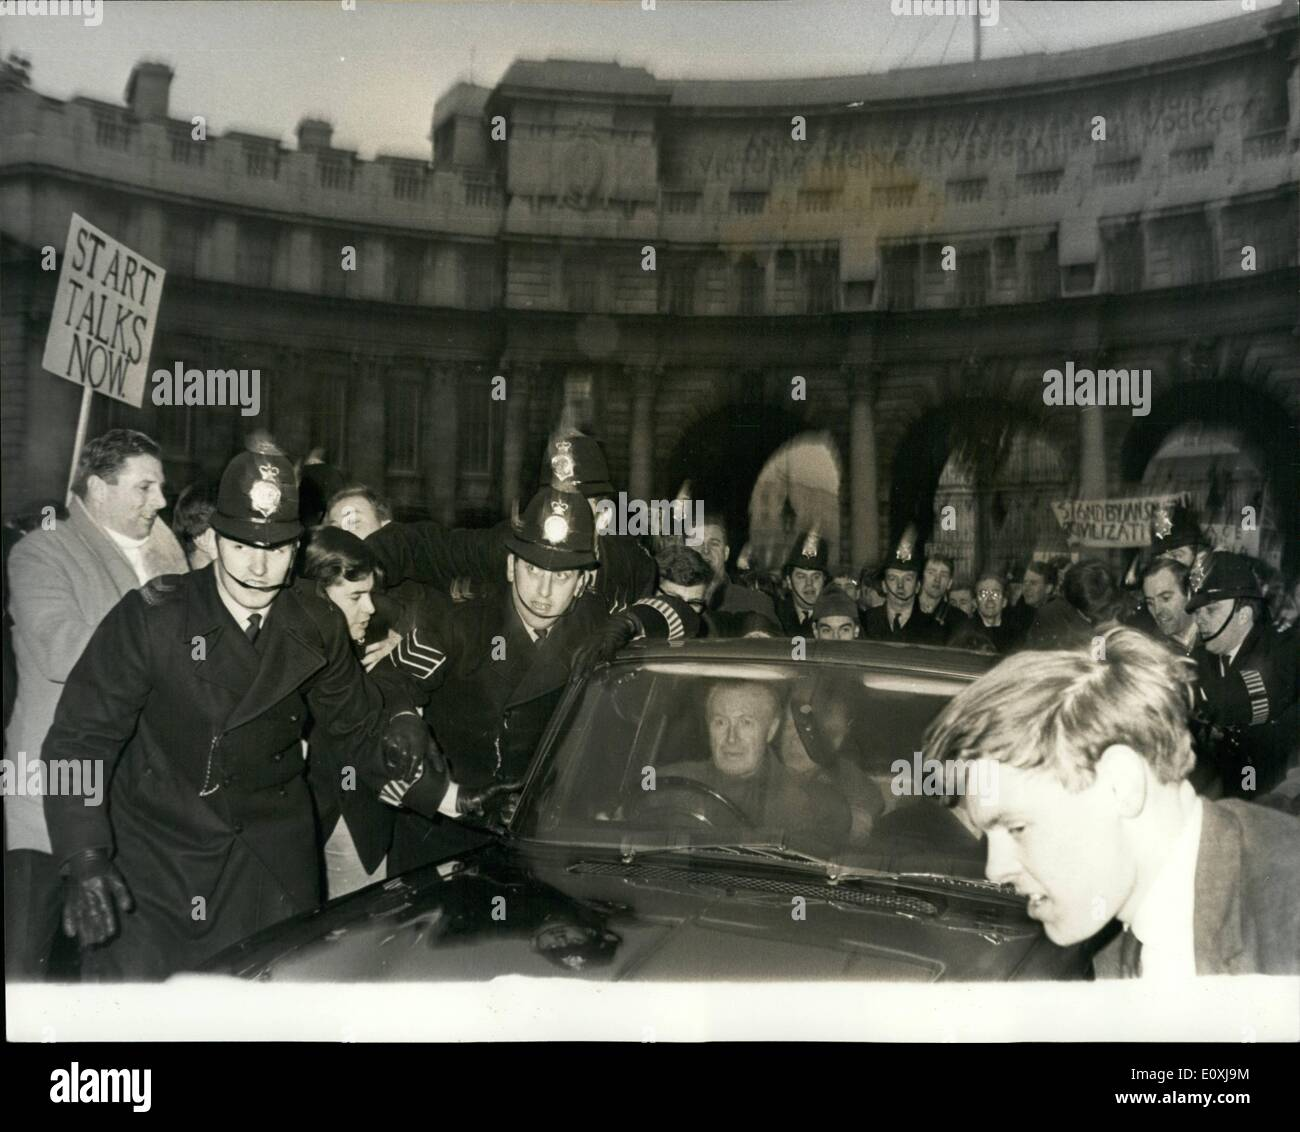 Jan. 16, 1967 - 16-1-67 Duncan Sandys holds a Peace-in-Rhodesia rally. Mr. Duncan Sandys, Tory M.P. yesterday held a Peace With Rhodesia rally in Trafalgar Square. After the rally, he was surrounded by a jeering crowd as he tried to reach his car. Some young demonstrators jumped on the car and others tried to overturn it. It was twenty minutes before Mr. Sandys and other Conservative MP's who had spoken at the rally were able to get clear of the crowd. Young Conservatives, Young Liberals and extremist groups from Right and Left were involved in scuffles during the rally and afterwards - Stock Image